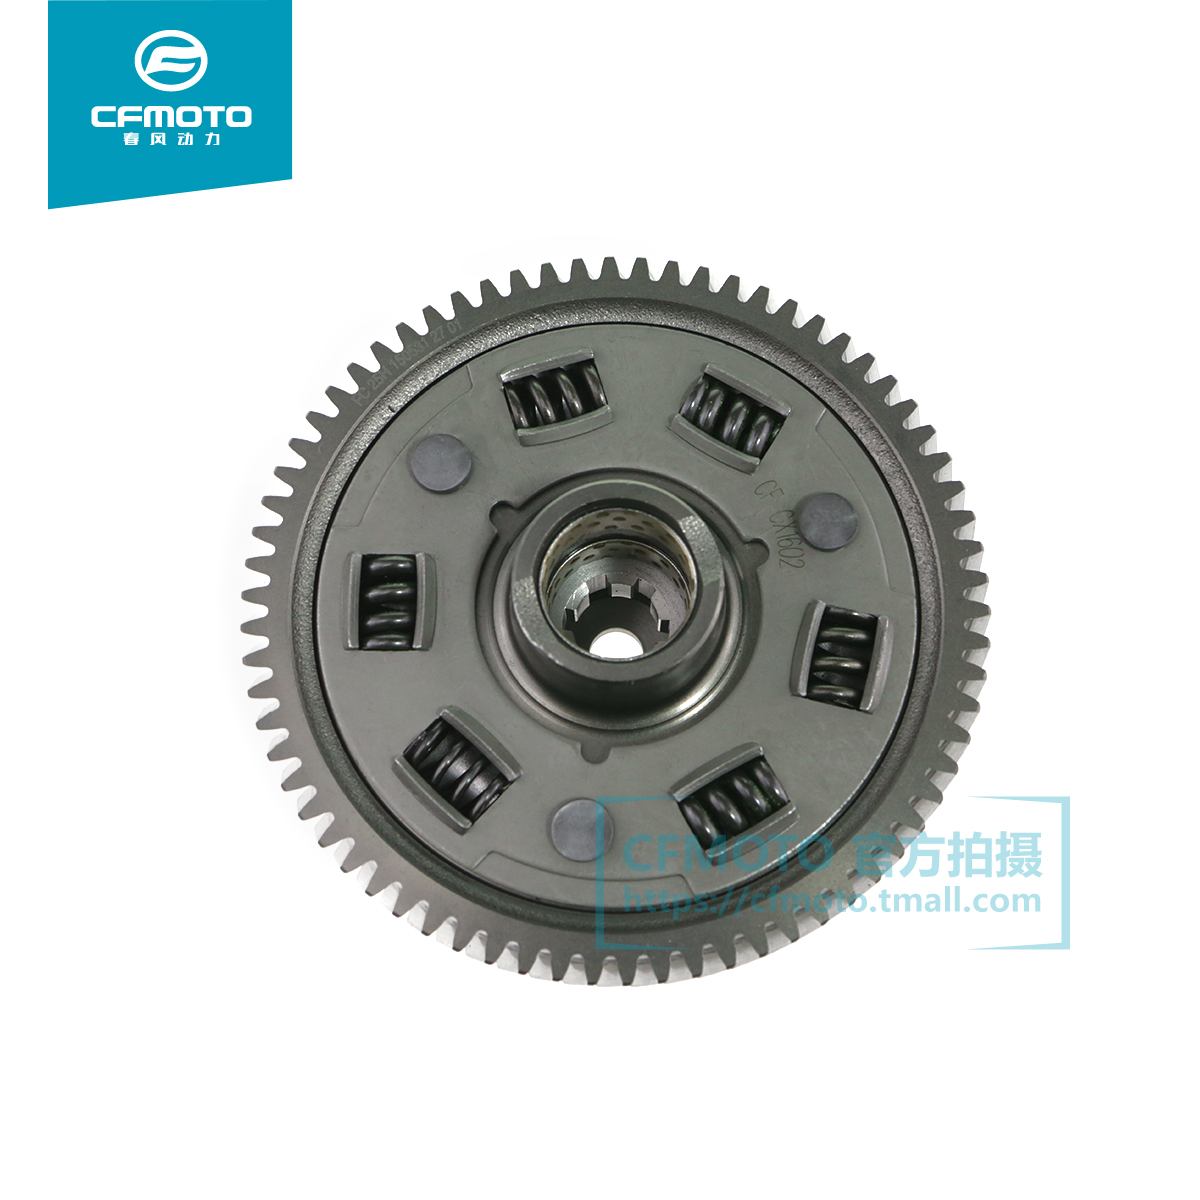 Cfmoto spring power cf150-3/cf150nk motorcycle parts clutch combination